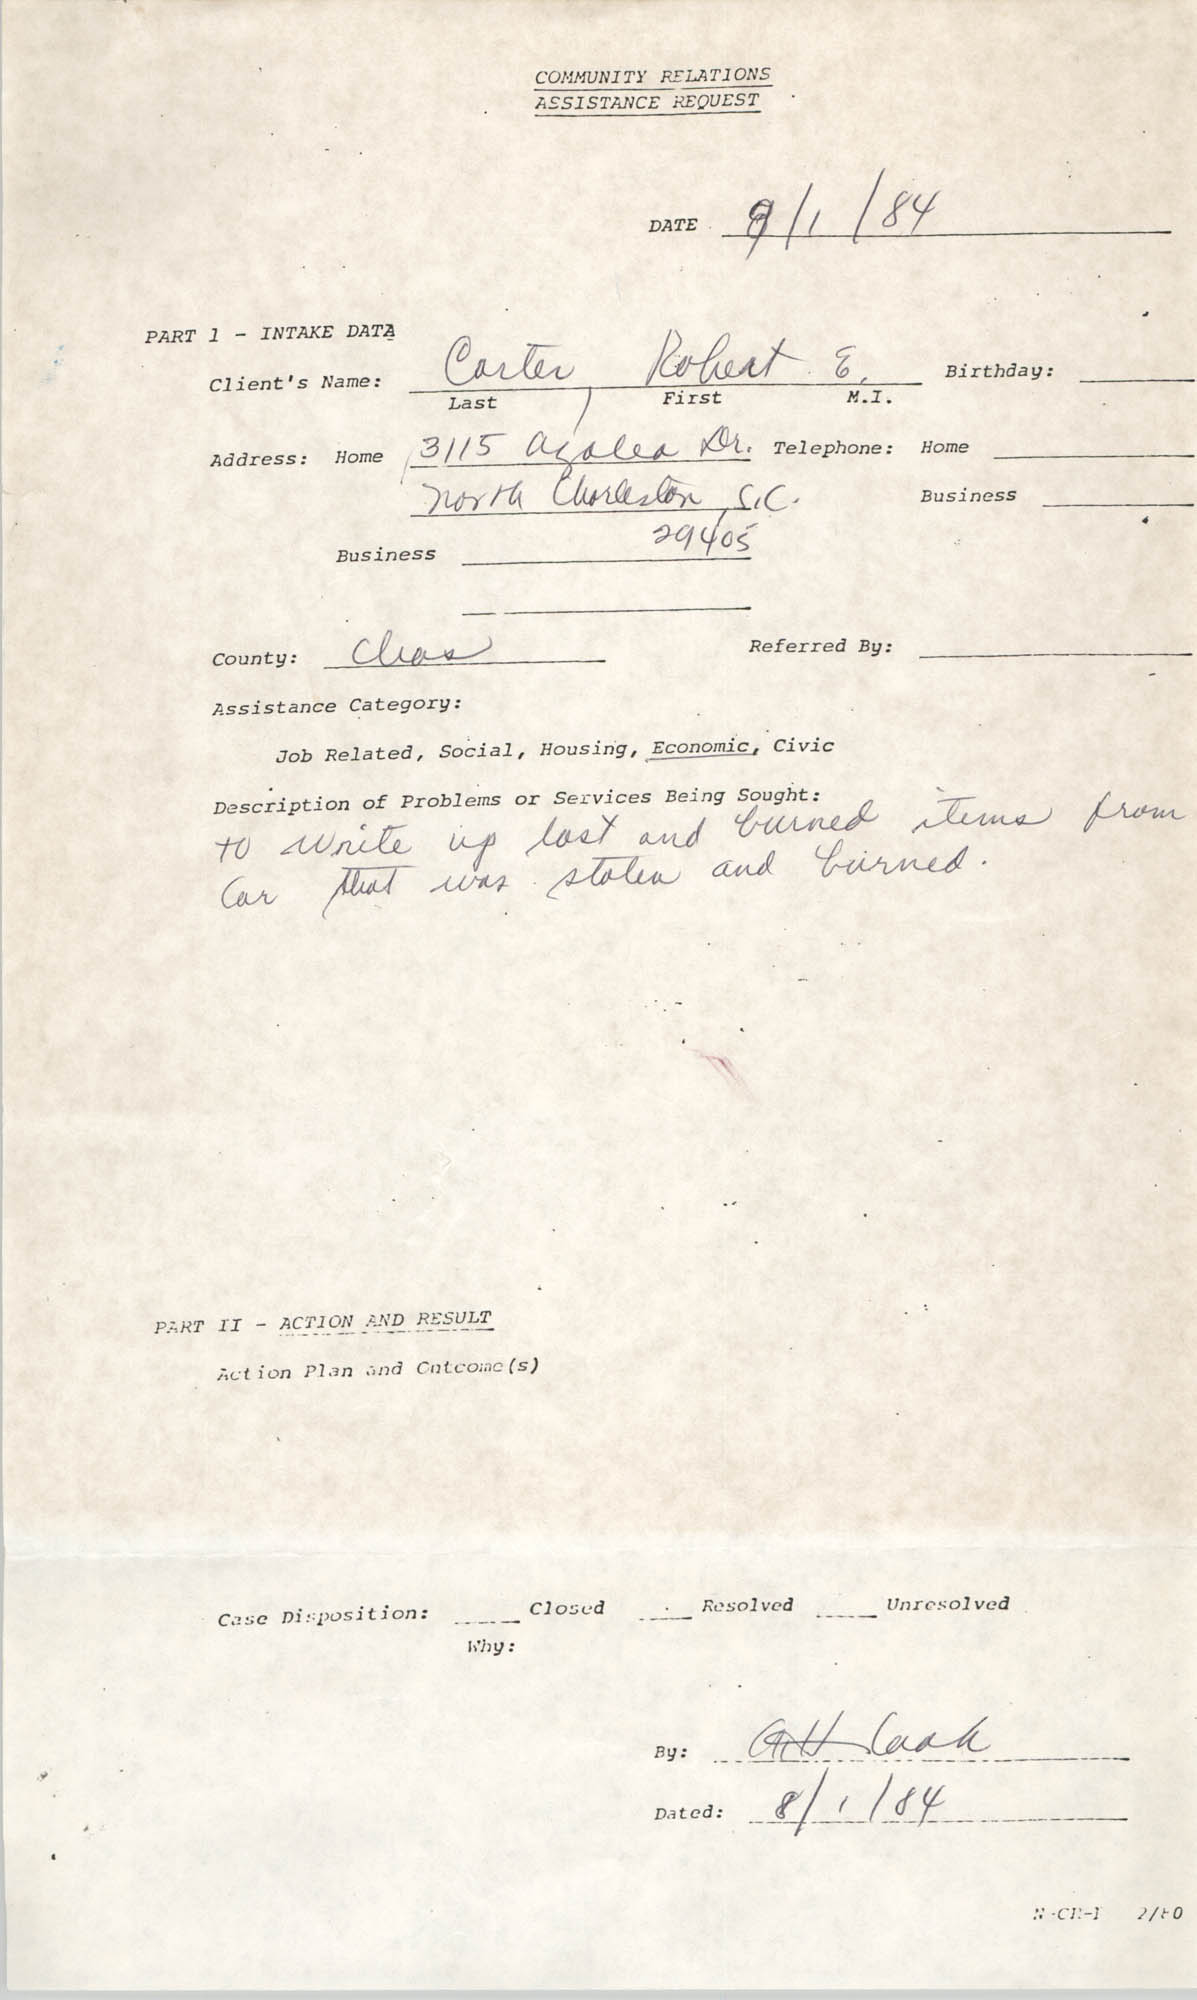 Community Relations Assistance Request, August 1, 1984